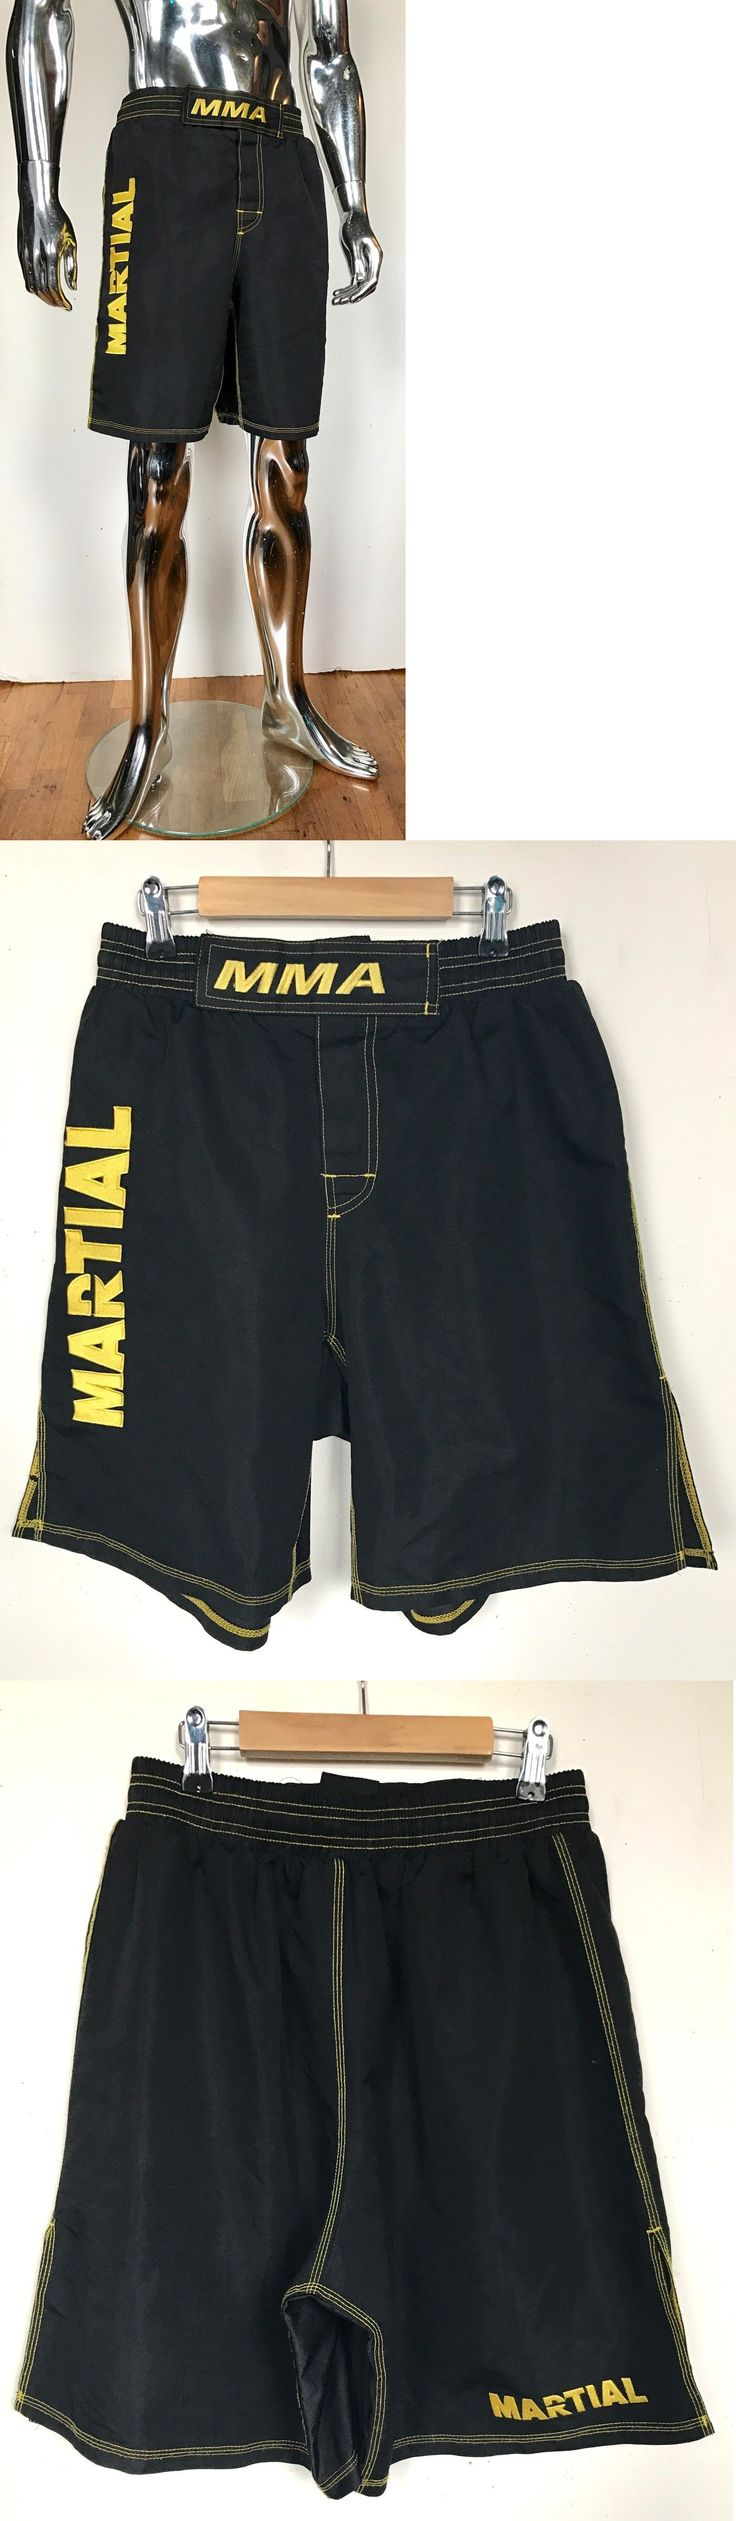 Other Combat Sport Clothing 73988: Mma Grappling Shorts Muay Thai Cage Fight Kick Boxing S Black Jock Muscle Men BUY IT NOW ONLY: $49.5